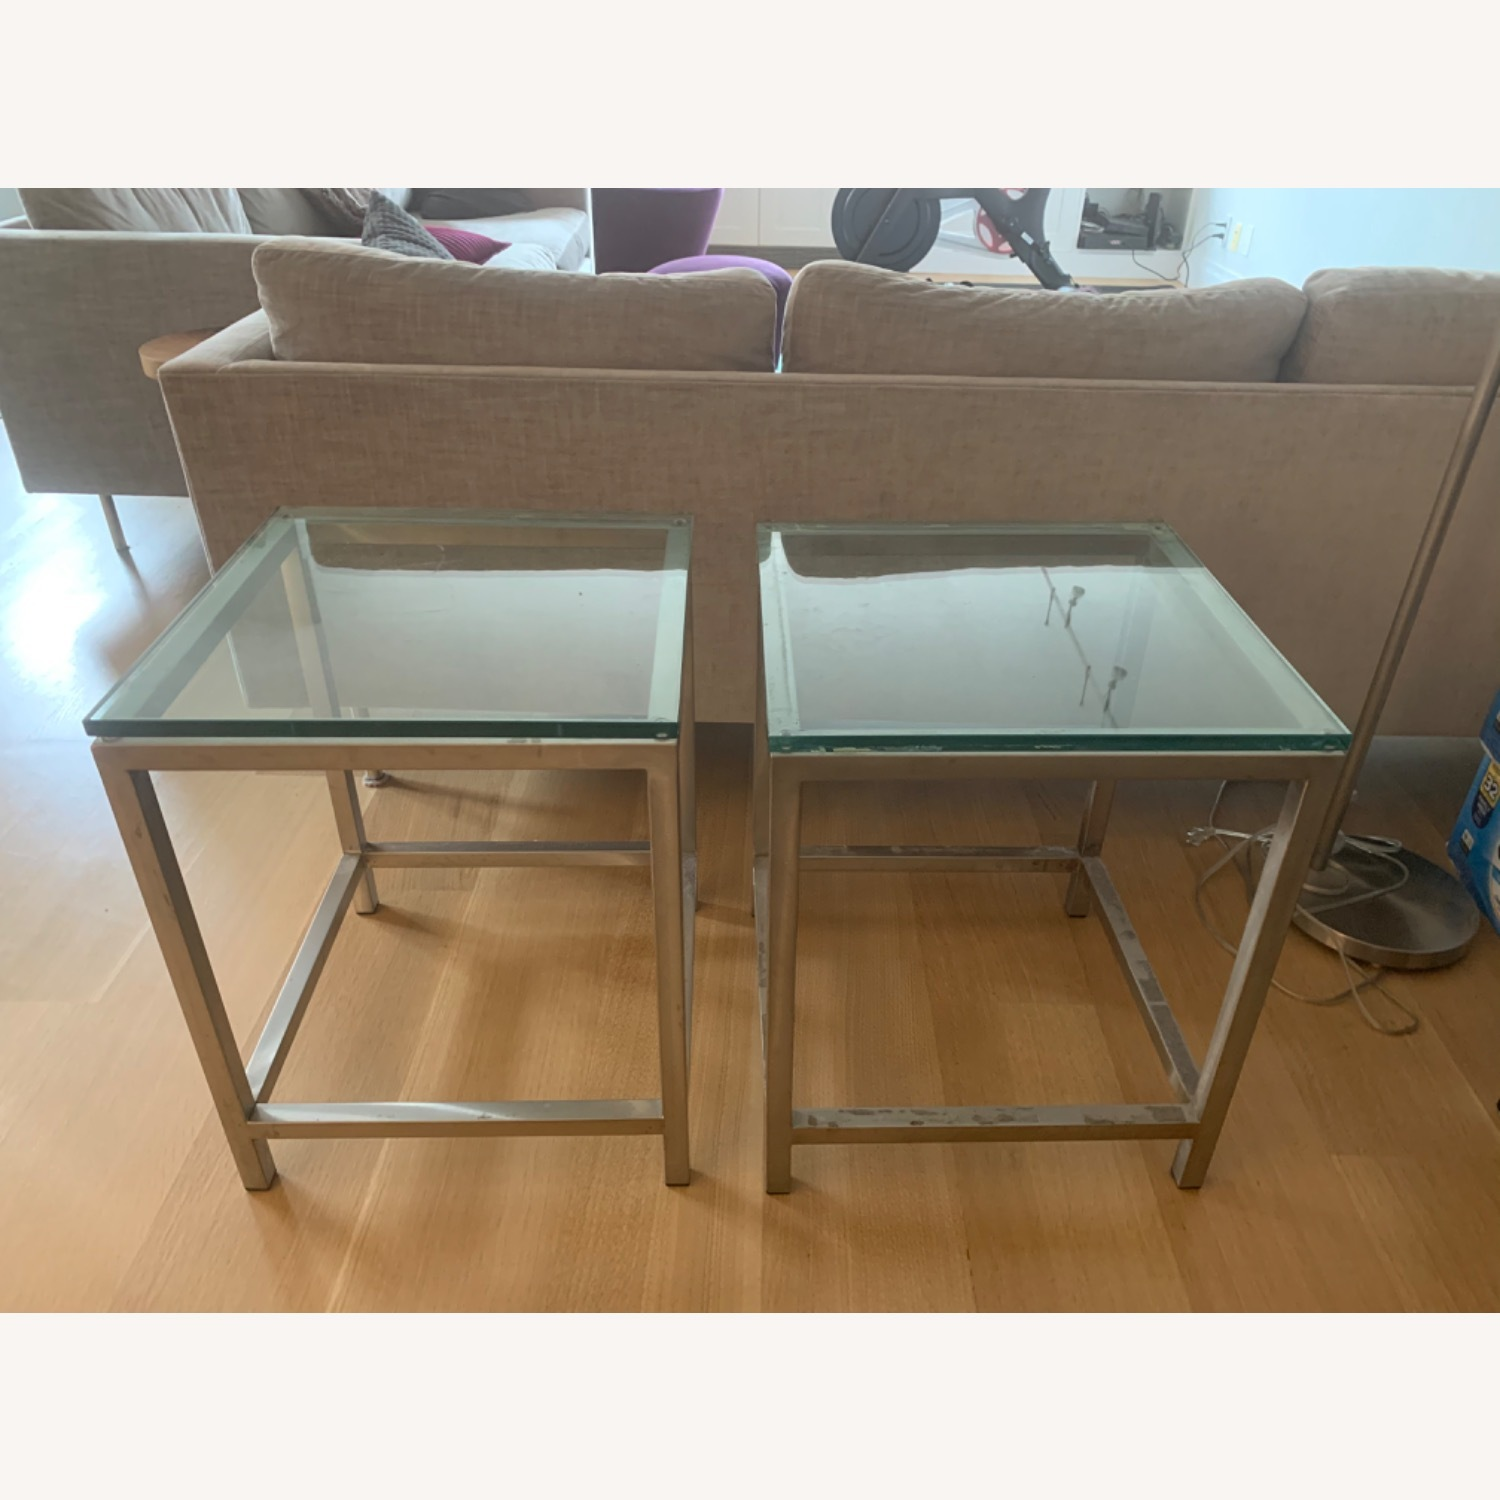 Crate & Barrel Glass-top Chrome Side Tables - image-5